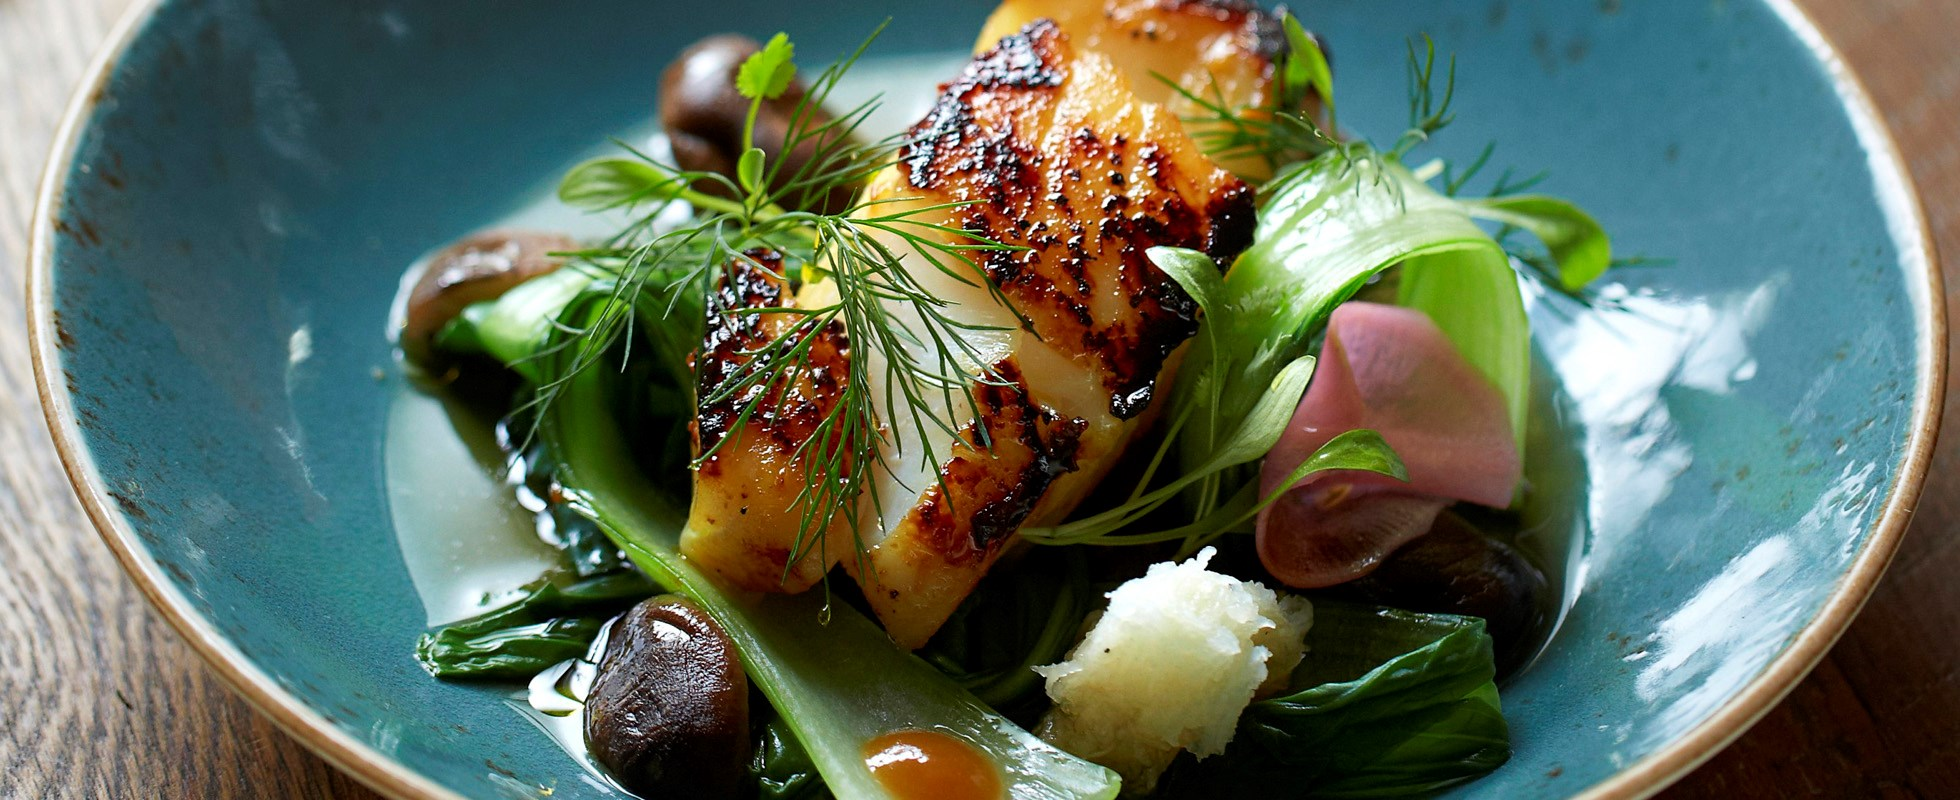 16 best ever japanese recipes olive magazine olive magazine the best blackened cod recipe marinated in miso with pak choi and shiitake mushrooms this dish from londons the city barge pub will impress your friends forumfinder